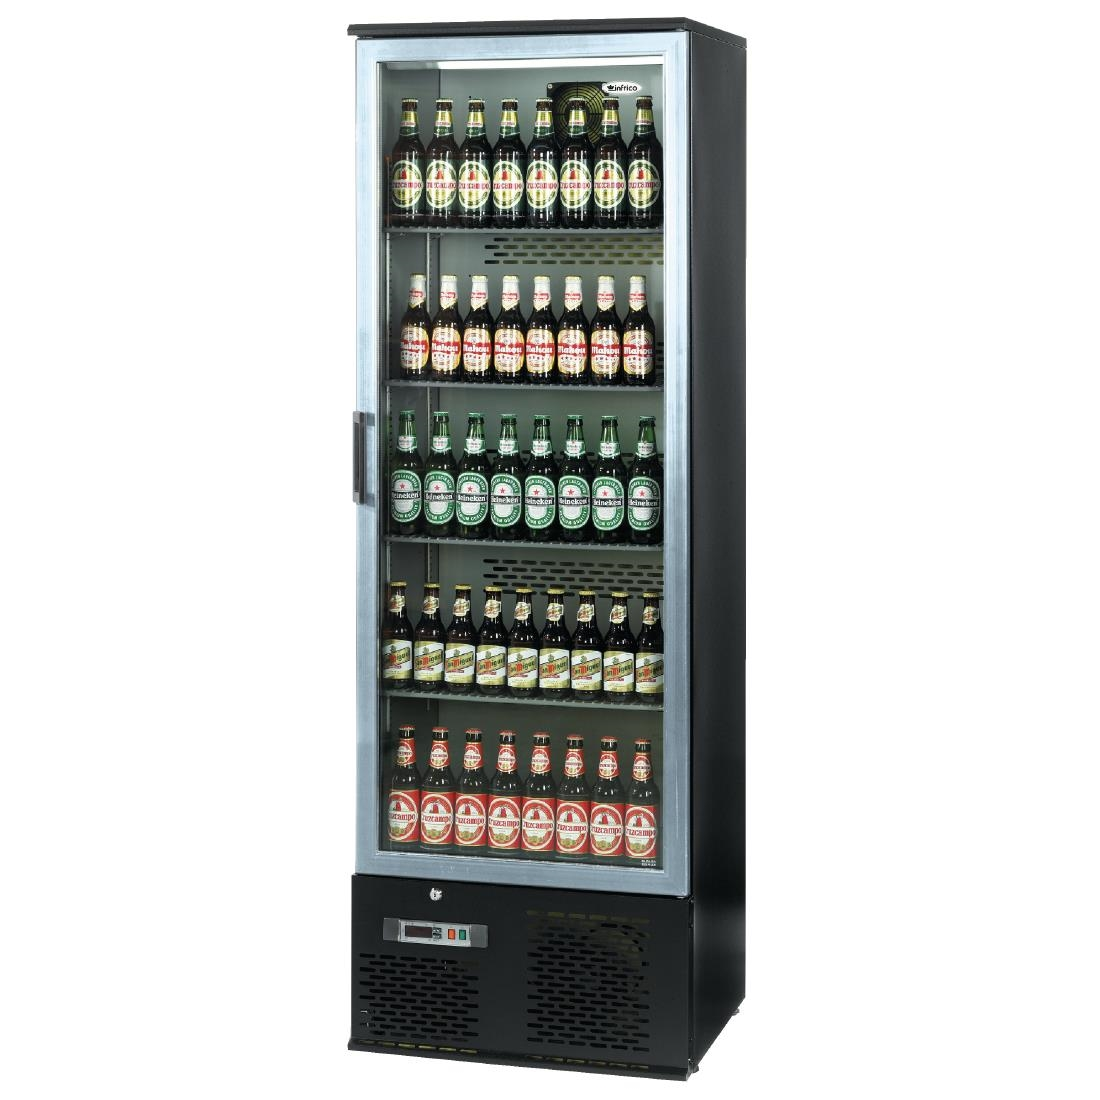 Image of Infrico Upright Back Bar Cooler with Hinged Door in Black and Steel ZXS10